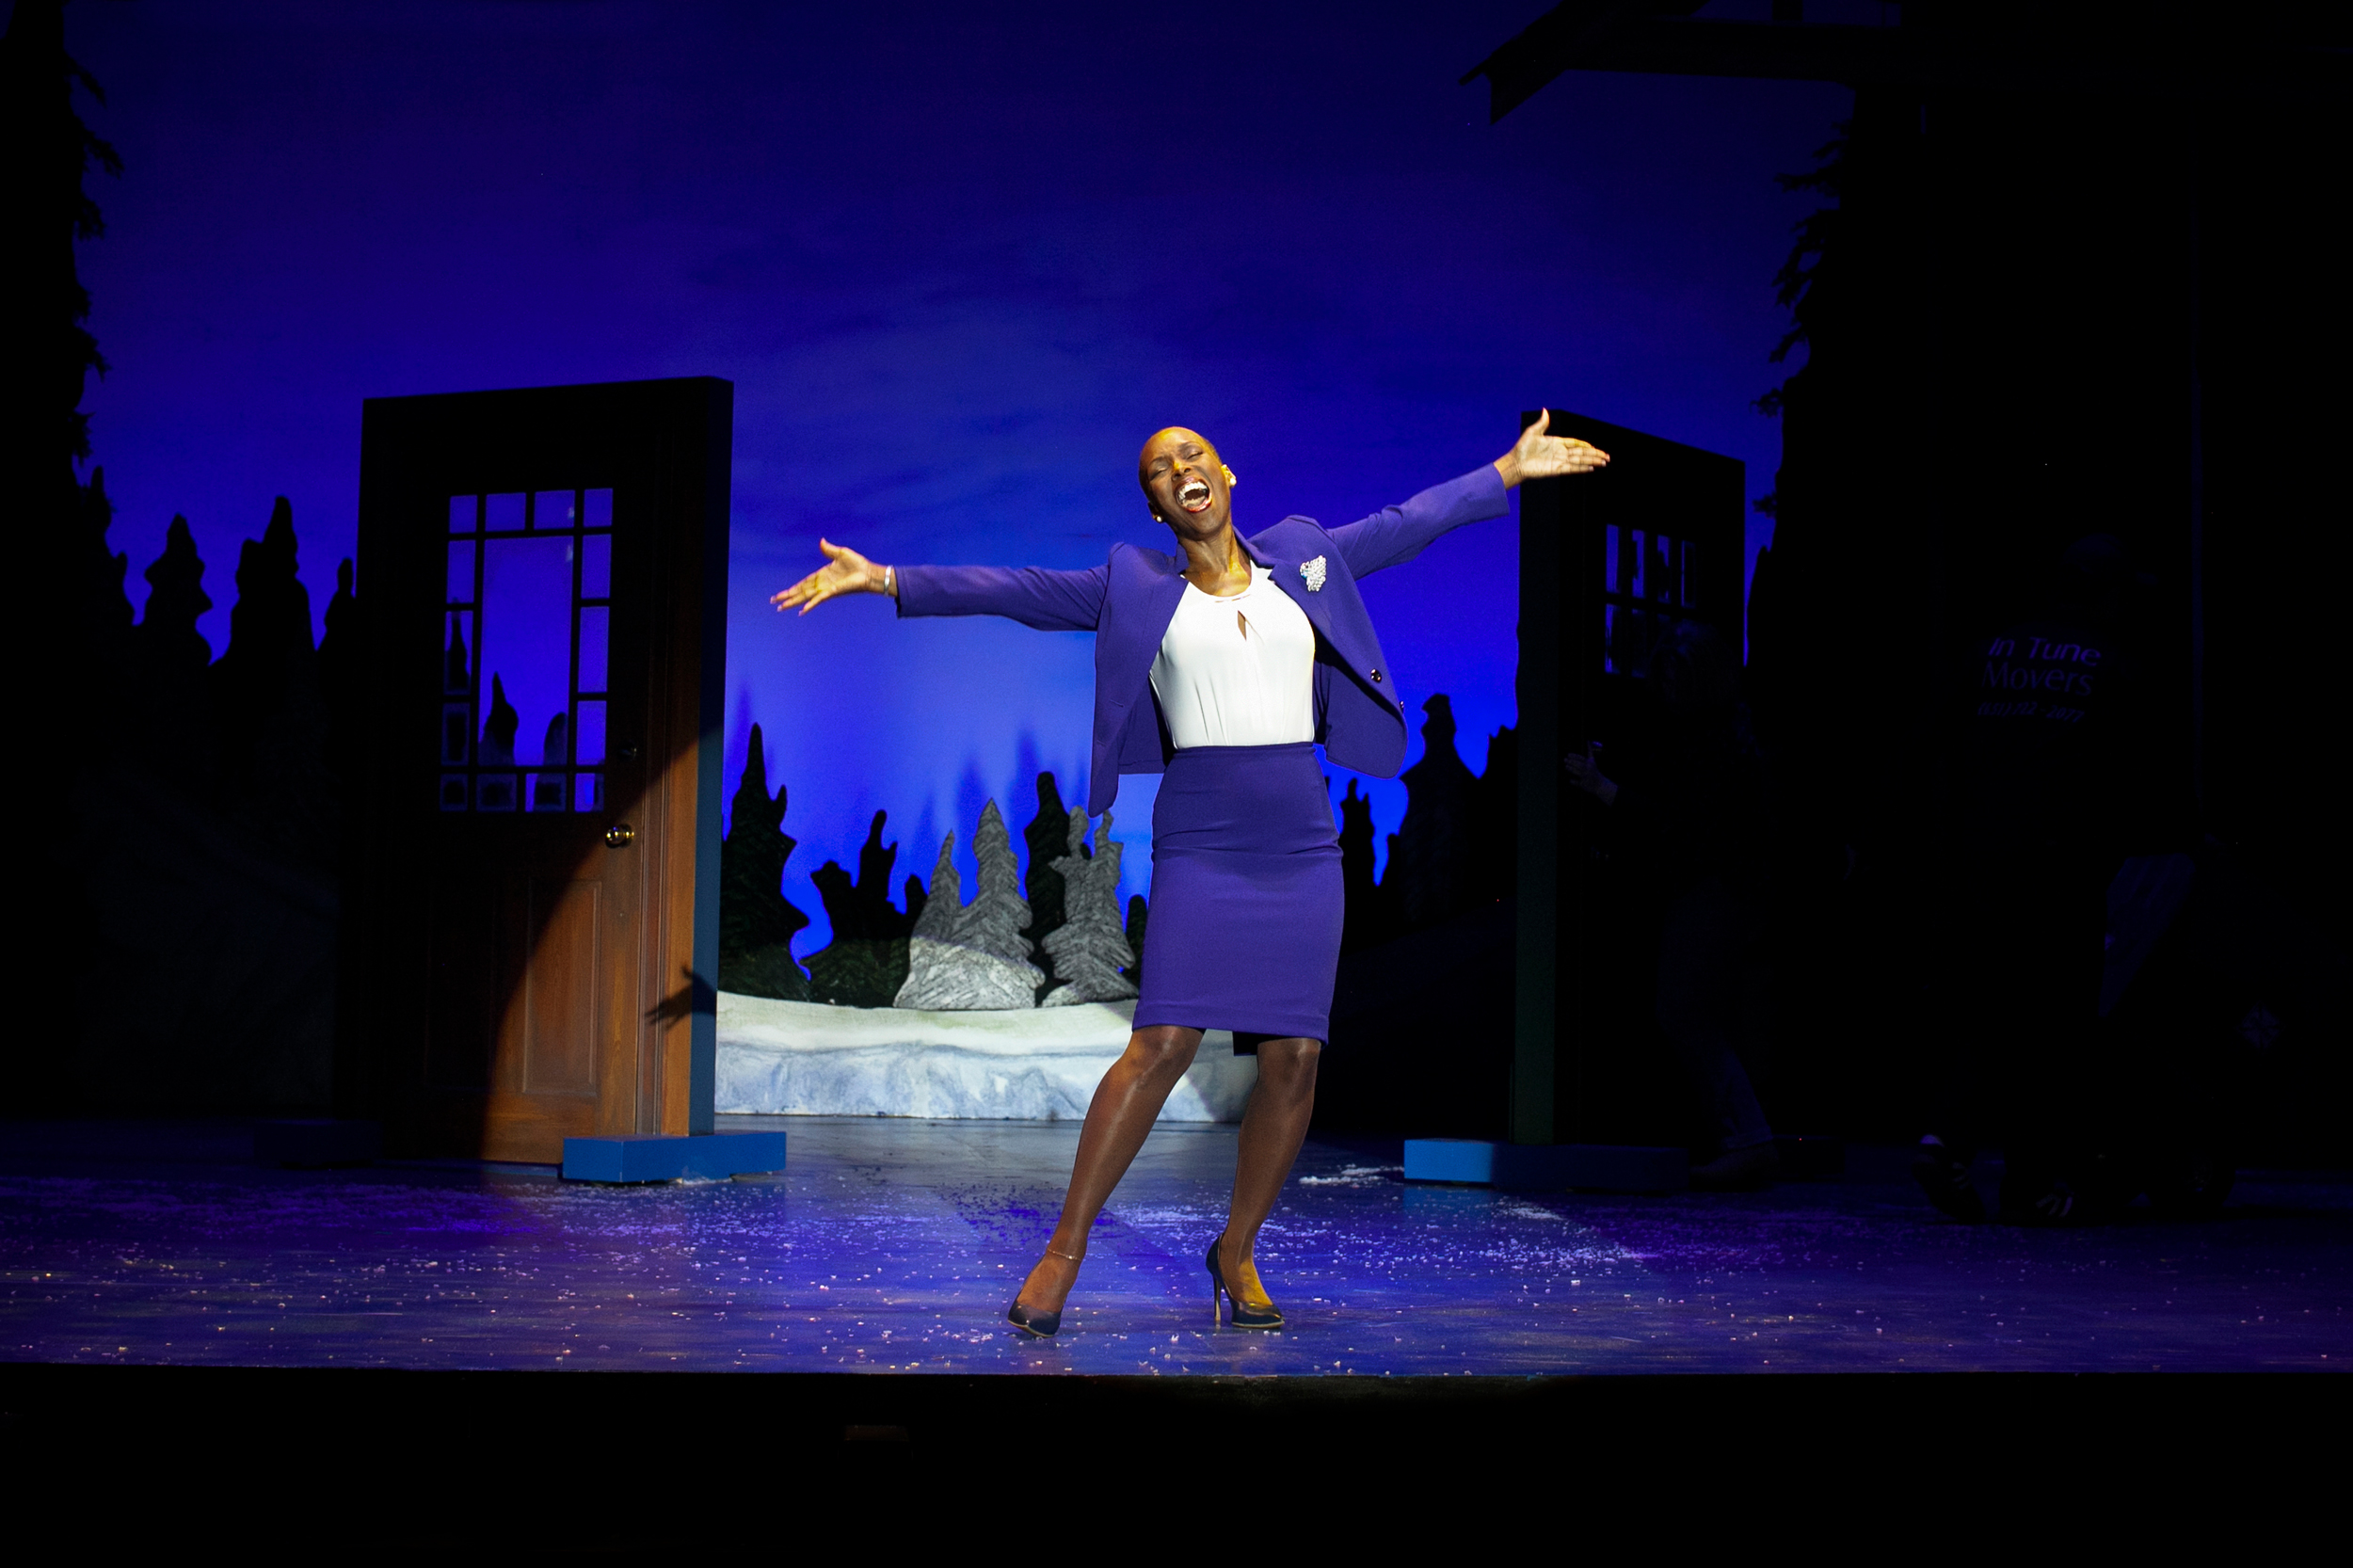 Tony nominee Brenda Braxton in Grumpy Old Men the Musical at the Ogunquit Playhouse. Photo by Jay Goldsmith.